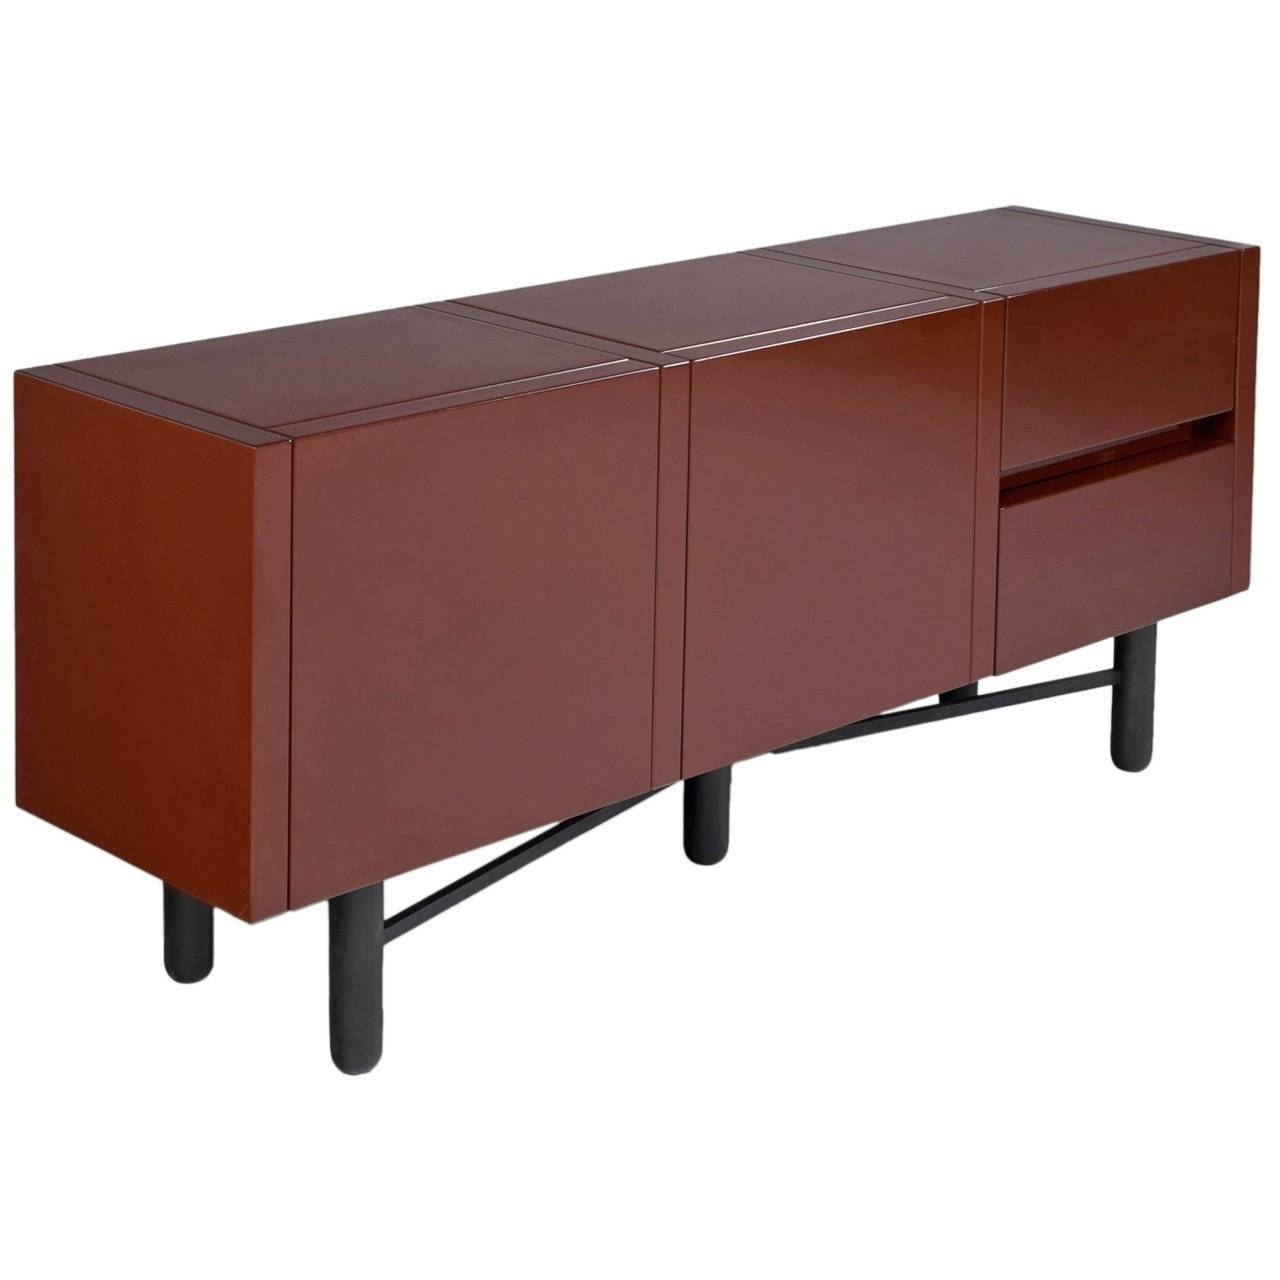 Roche Bobois Red Lacquered High Gloss Sideboard For Sale At 1Stdibs intended for Unusual Sideboards (Image 15 of 30)